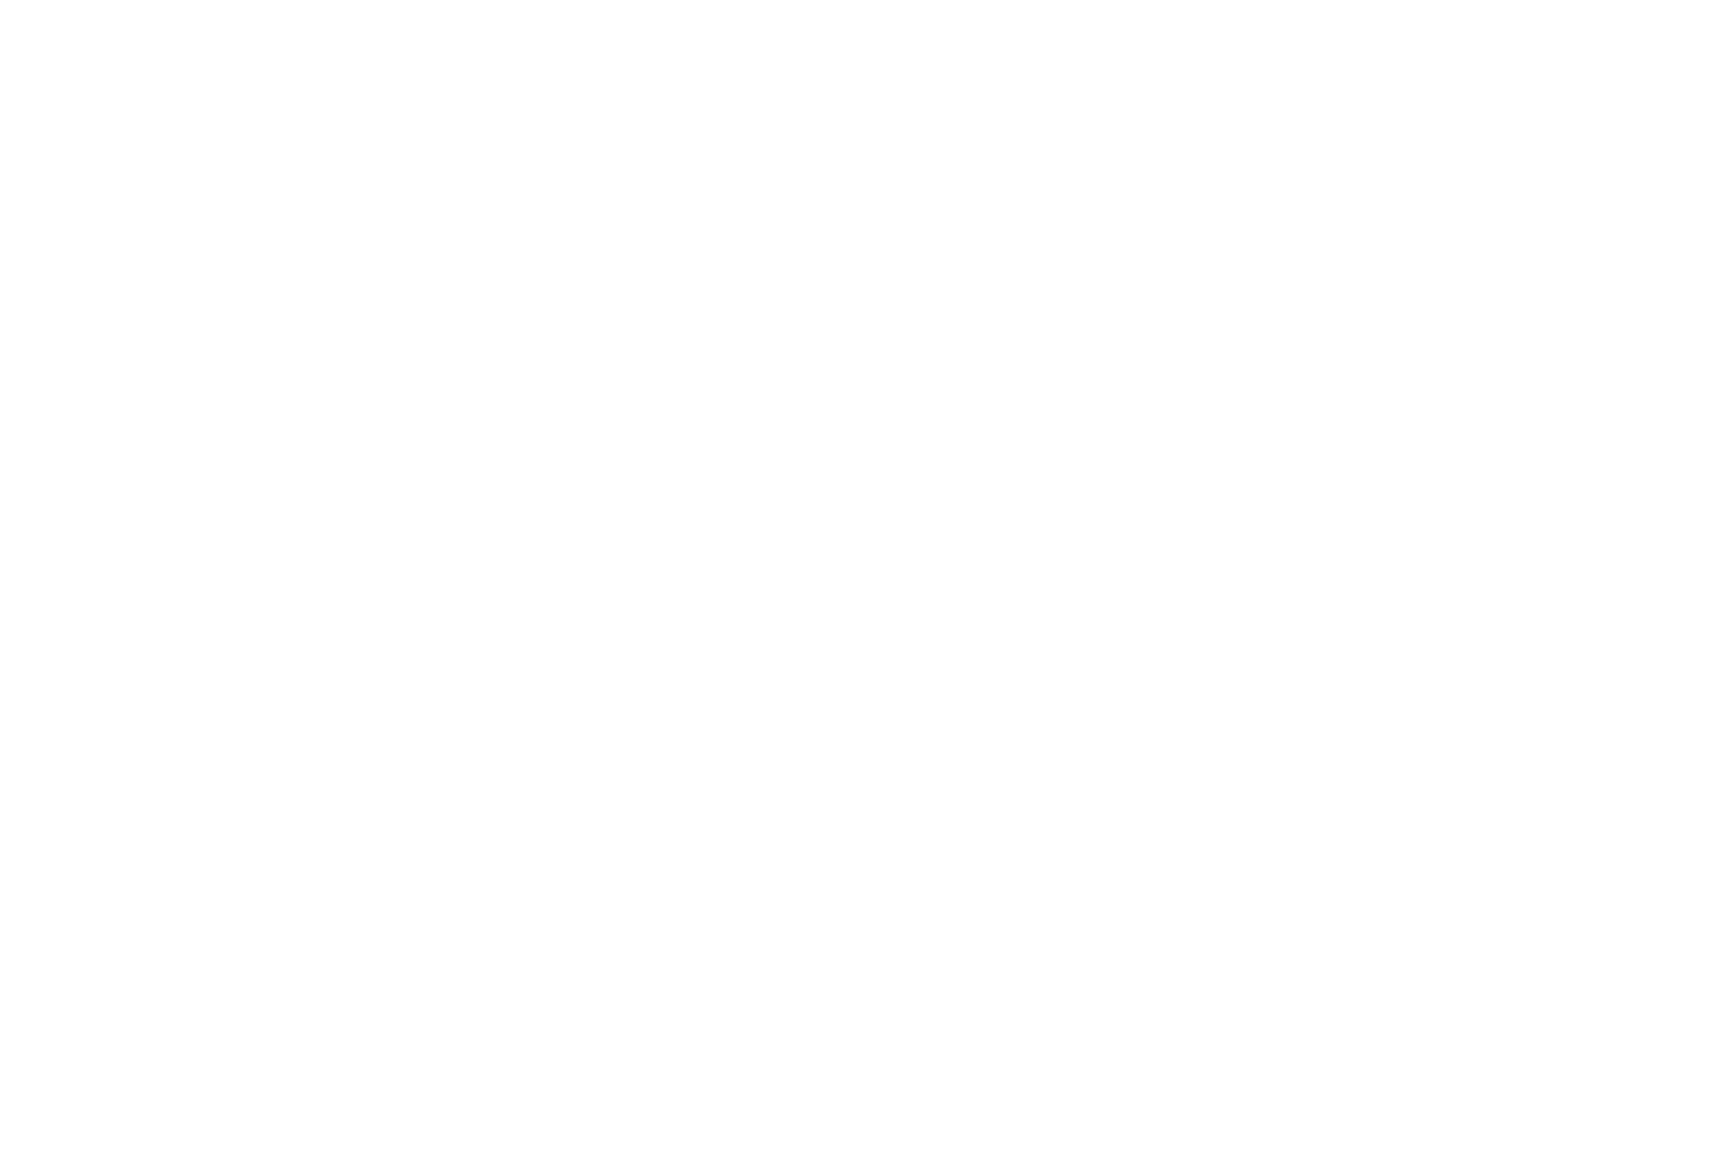 OFFICIAL SELECTION - LDS FILM FESTIVAL - 2017.png